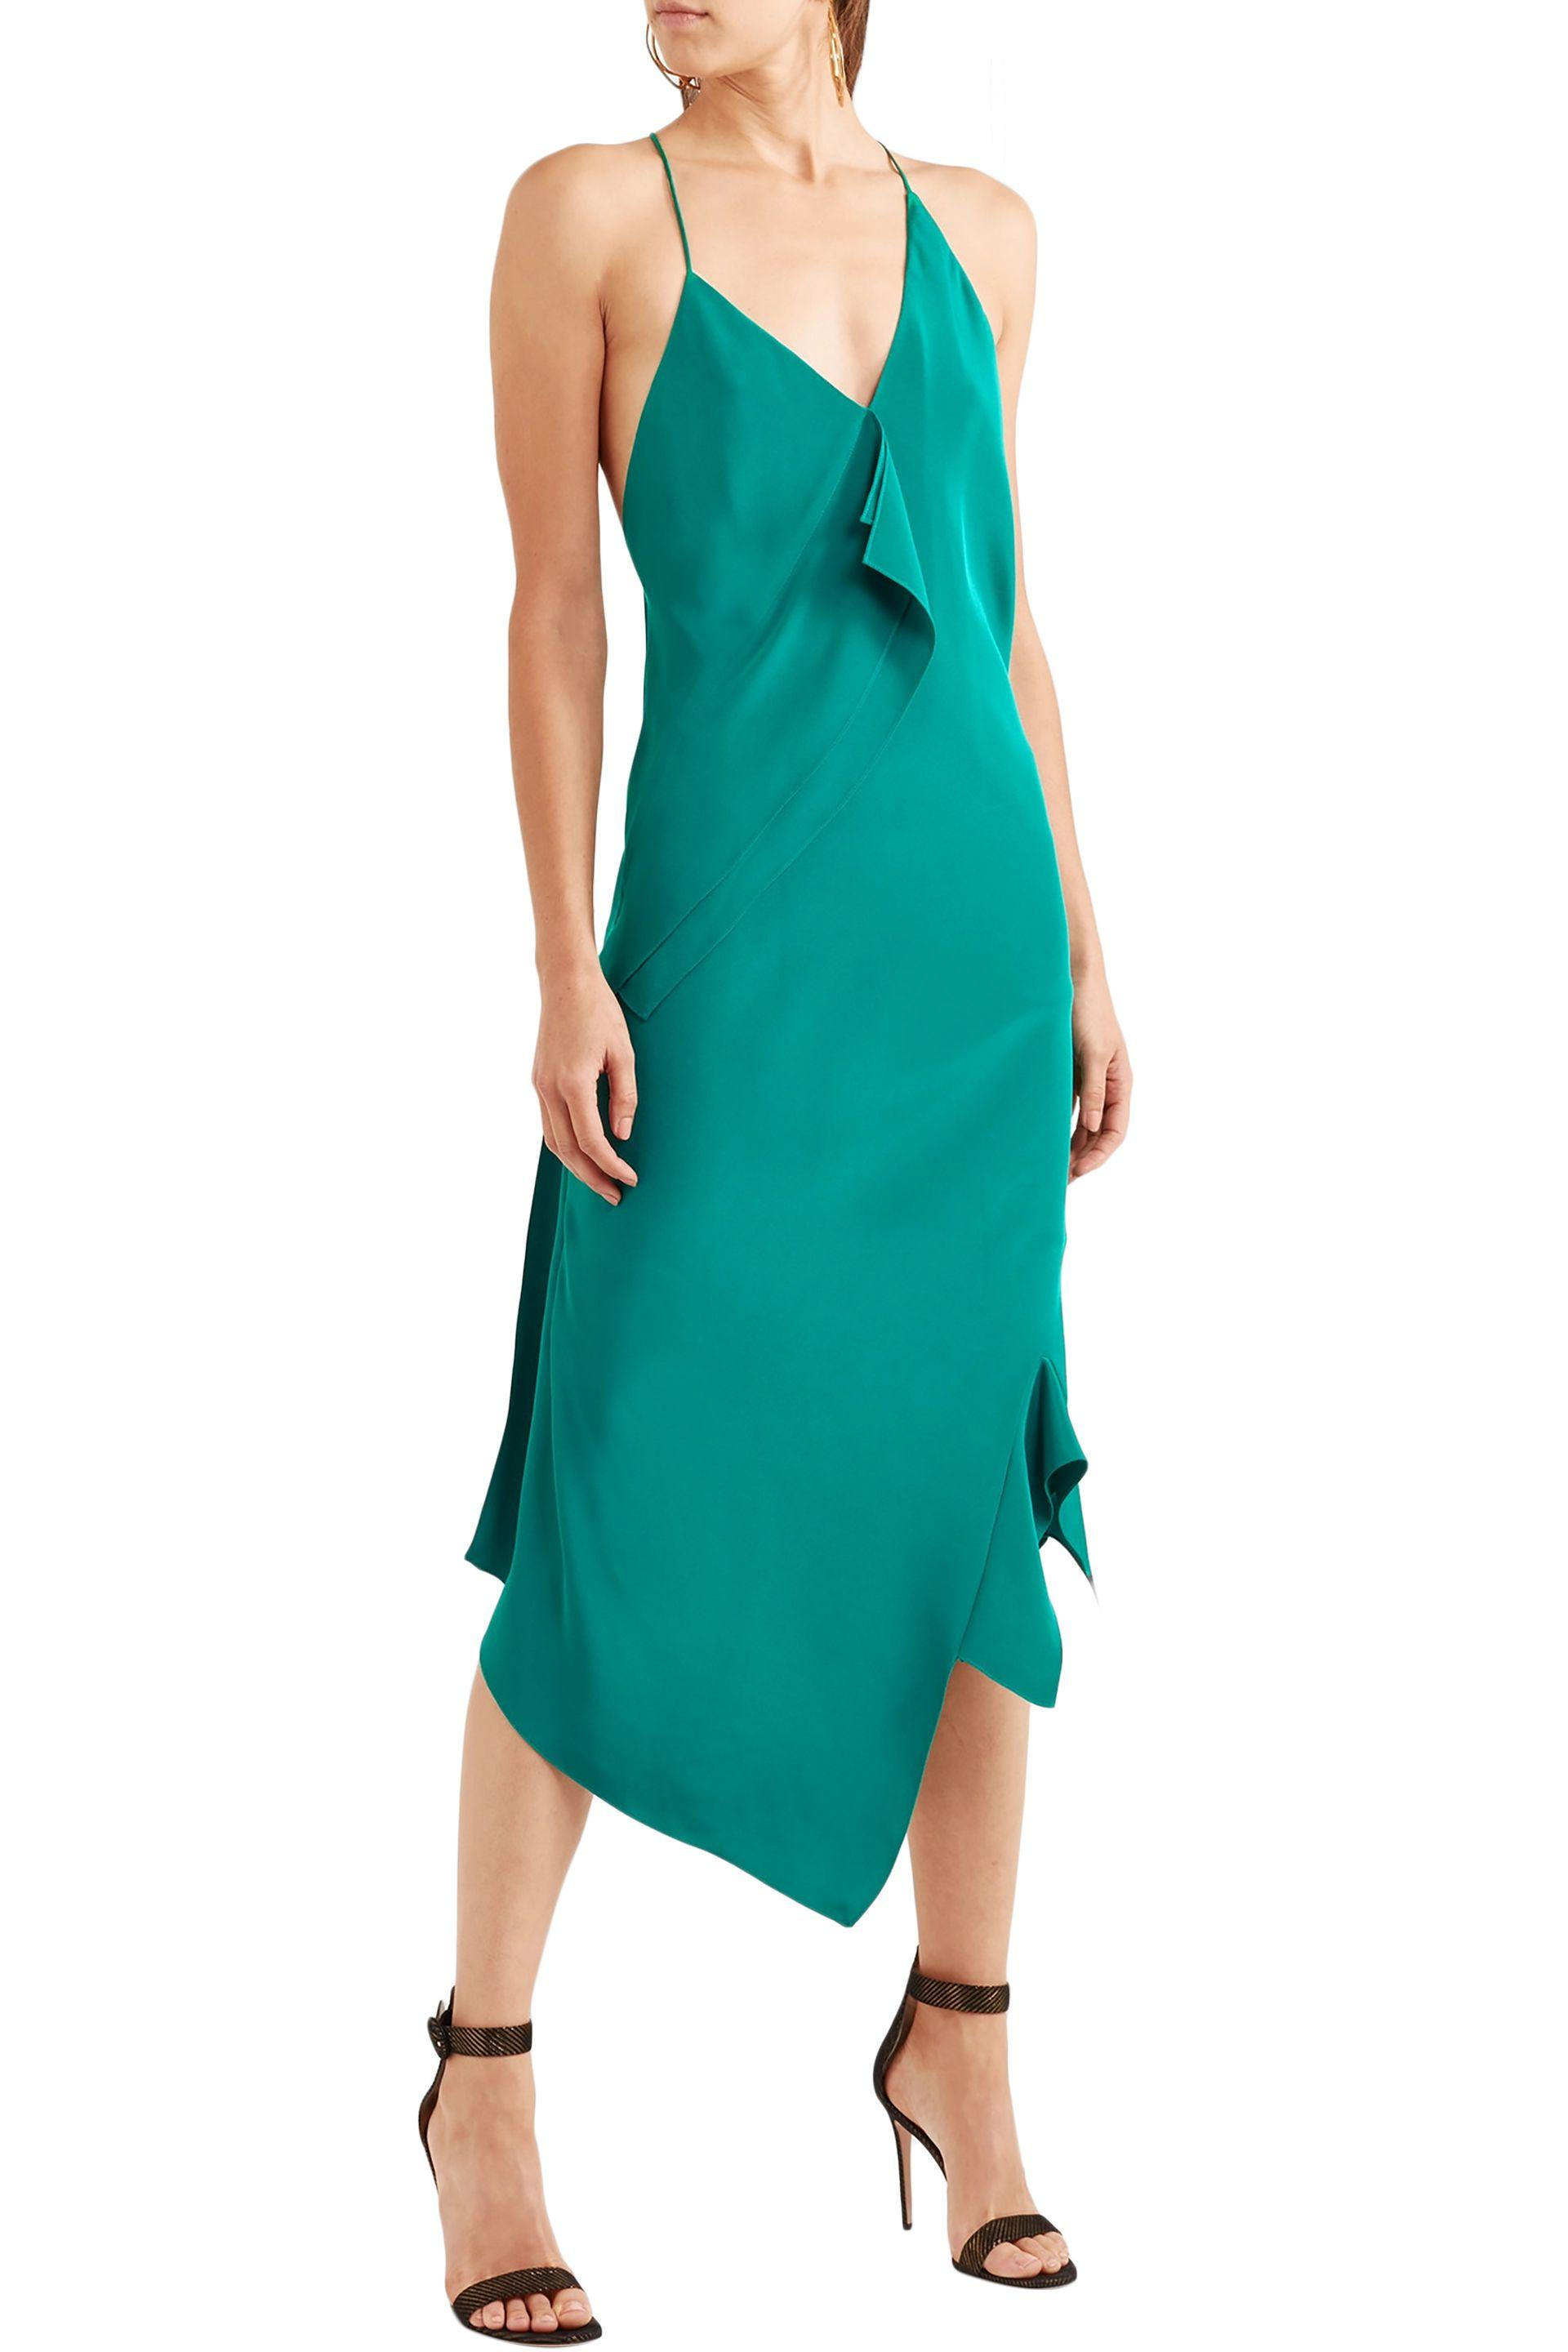 23dd3b1e02c roland-mouret-Teal-Woman-Jimboy-Asymmetric-Silk-Midi-Dress-Teal.jpeg